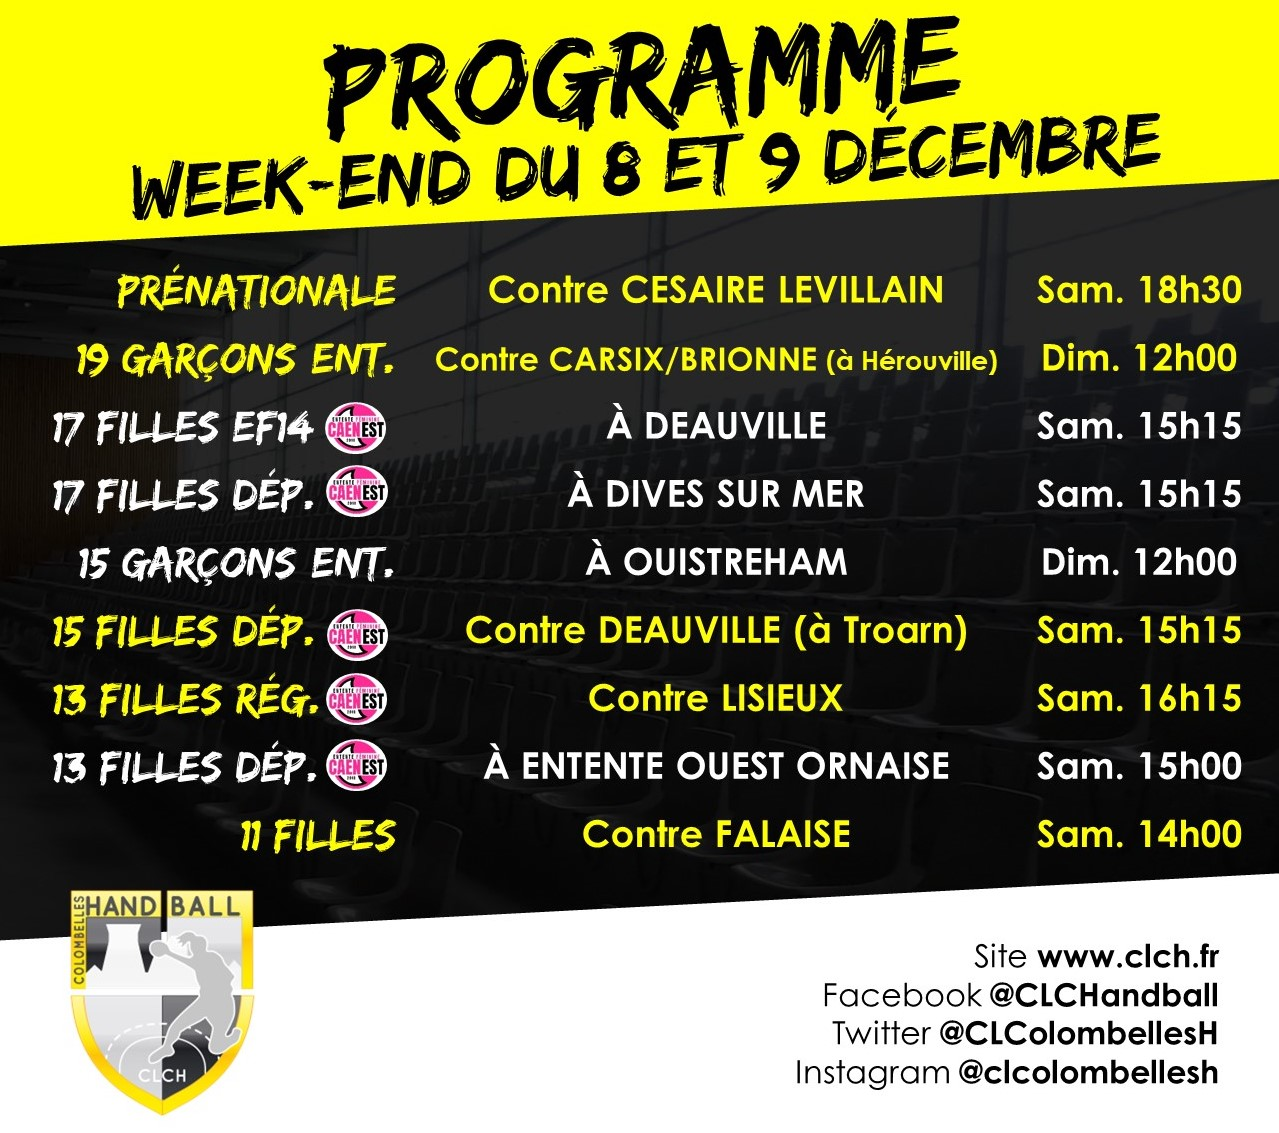 PROG WEEKEND 8-9 DEC